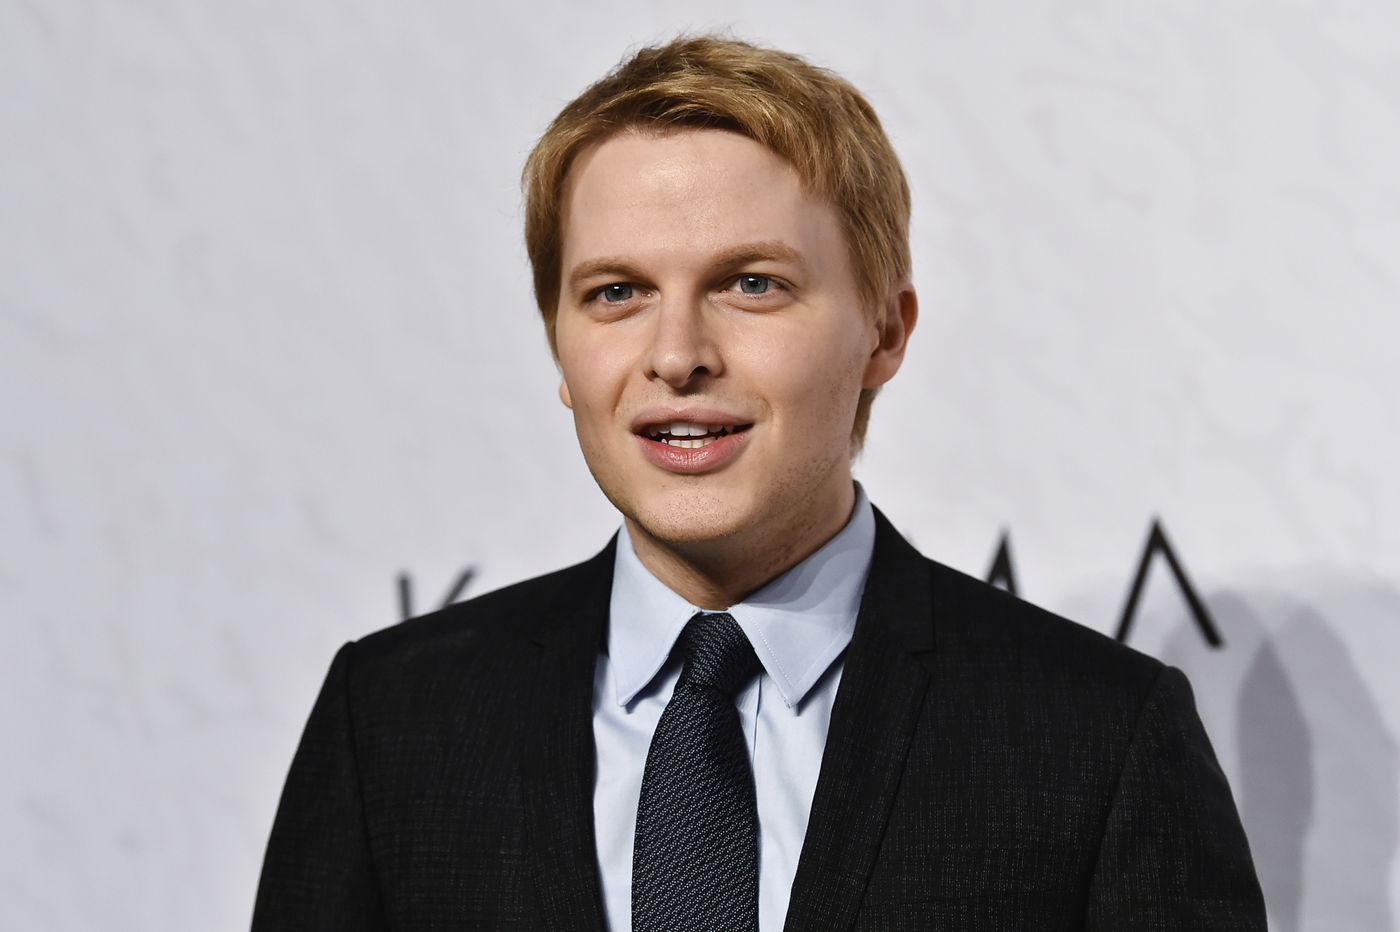 Ronan Farrow's 'Catch and Kill' dispels the notion that women can easily weaponize sexual assault allegations | Book review